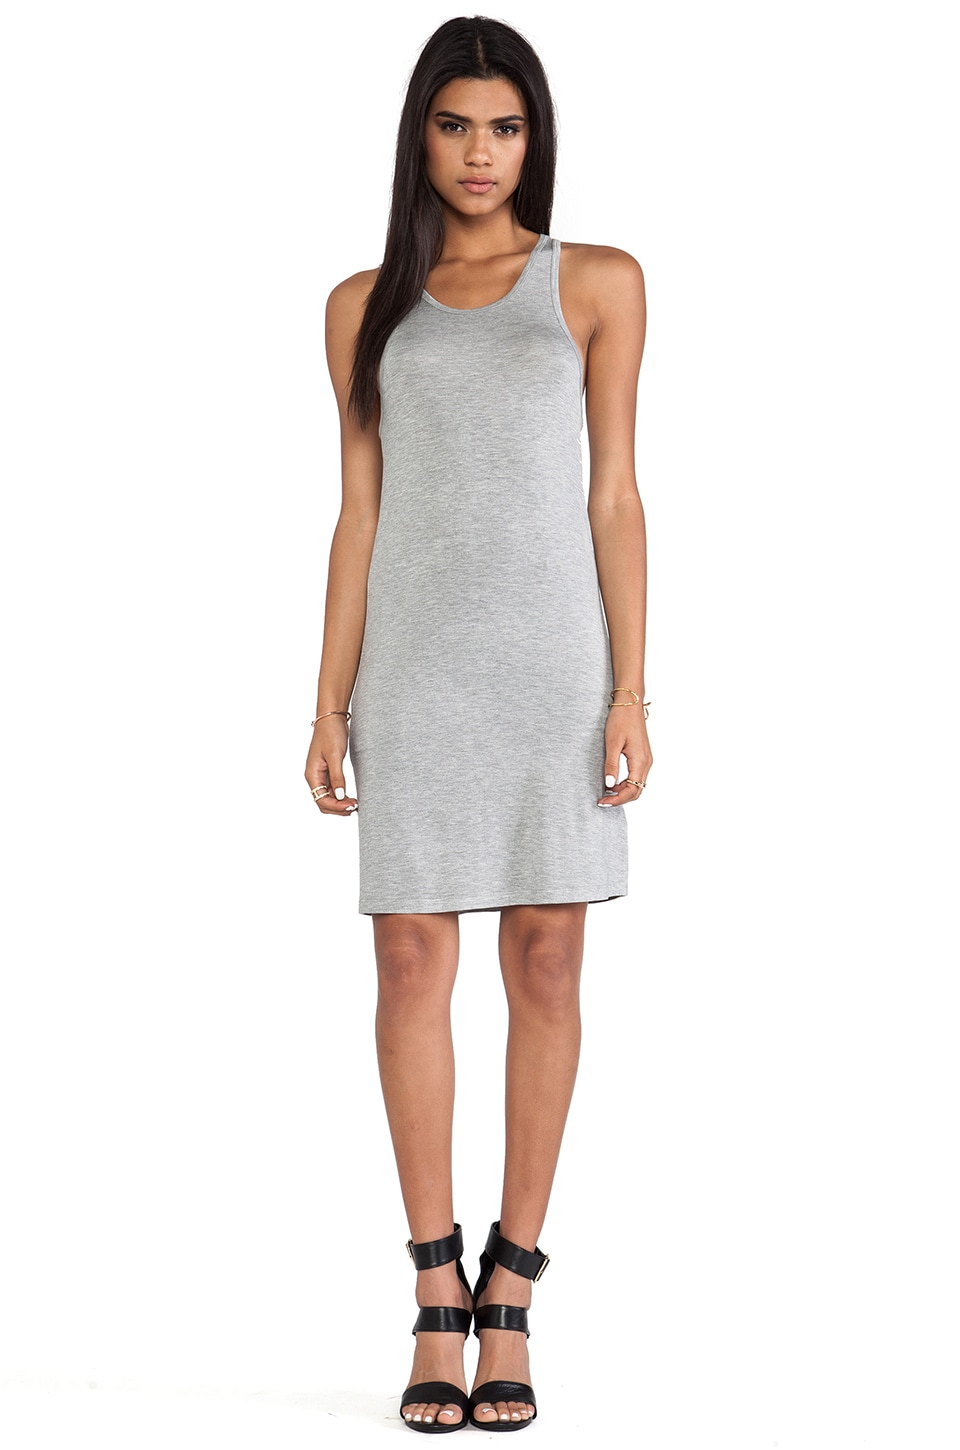 L'AMERICA The New Cool Jersey Dress in Grey Marle